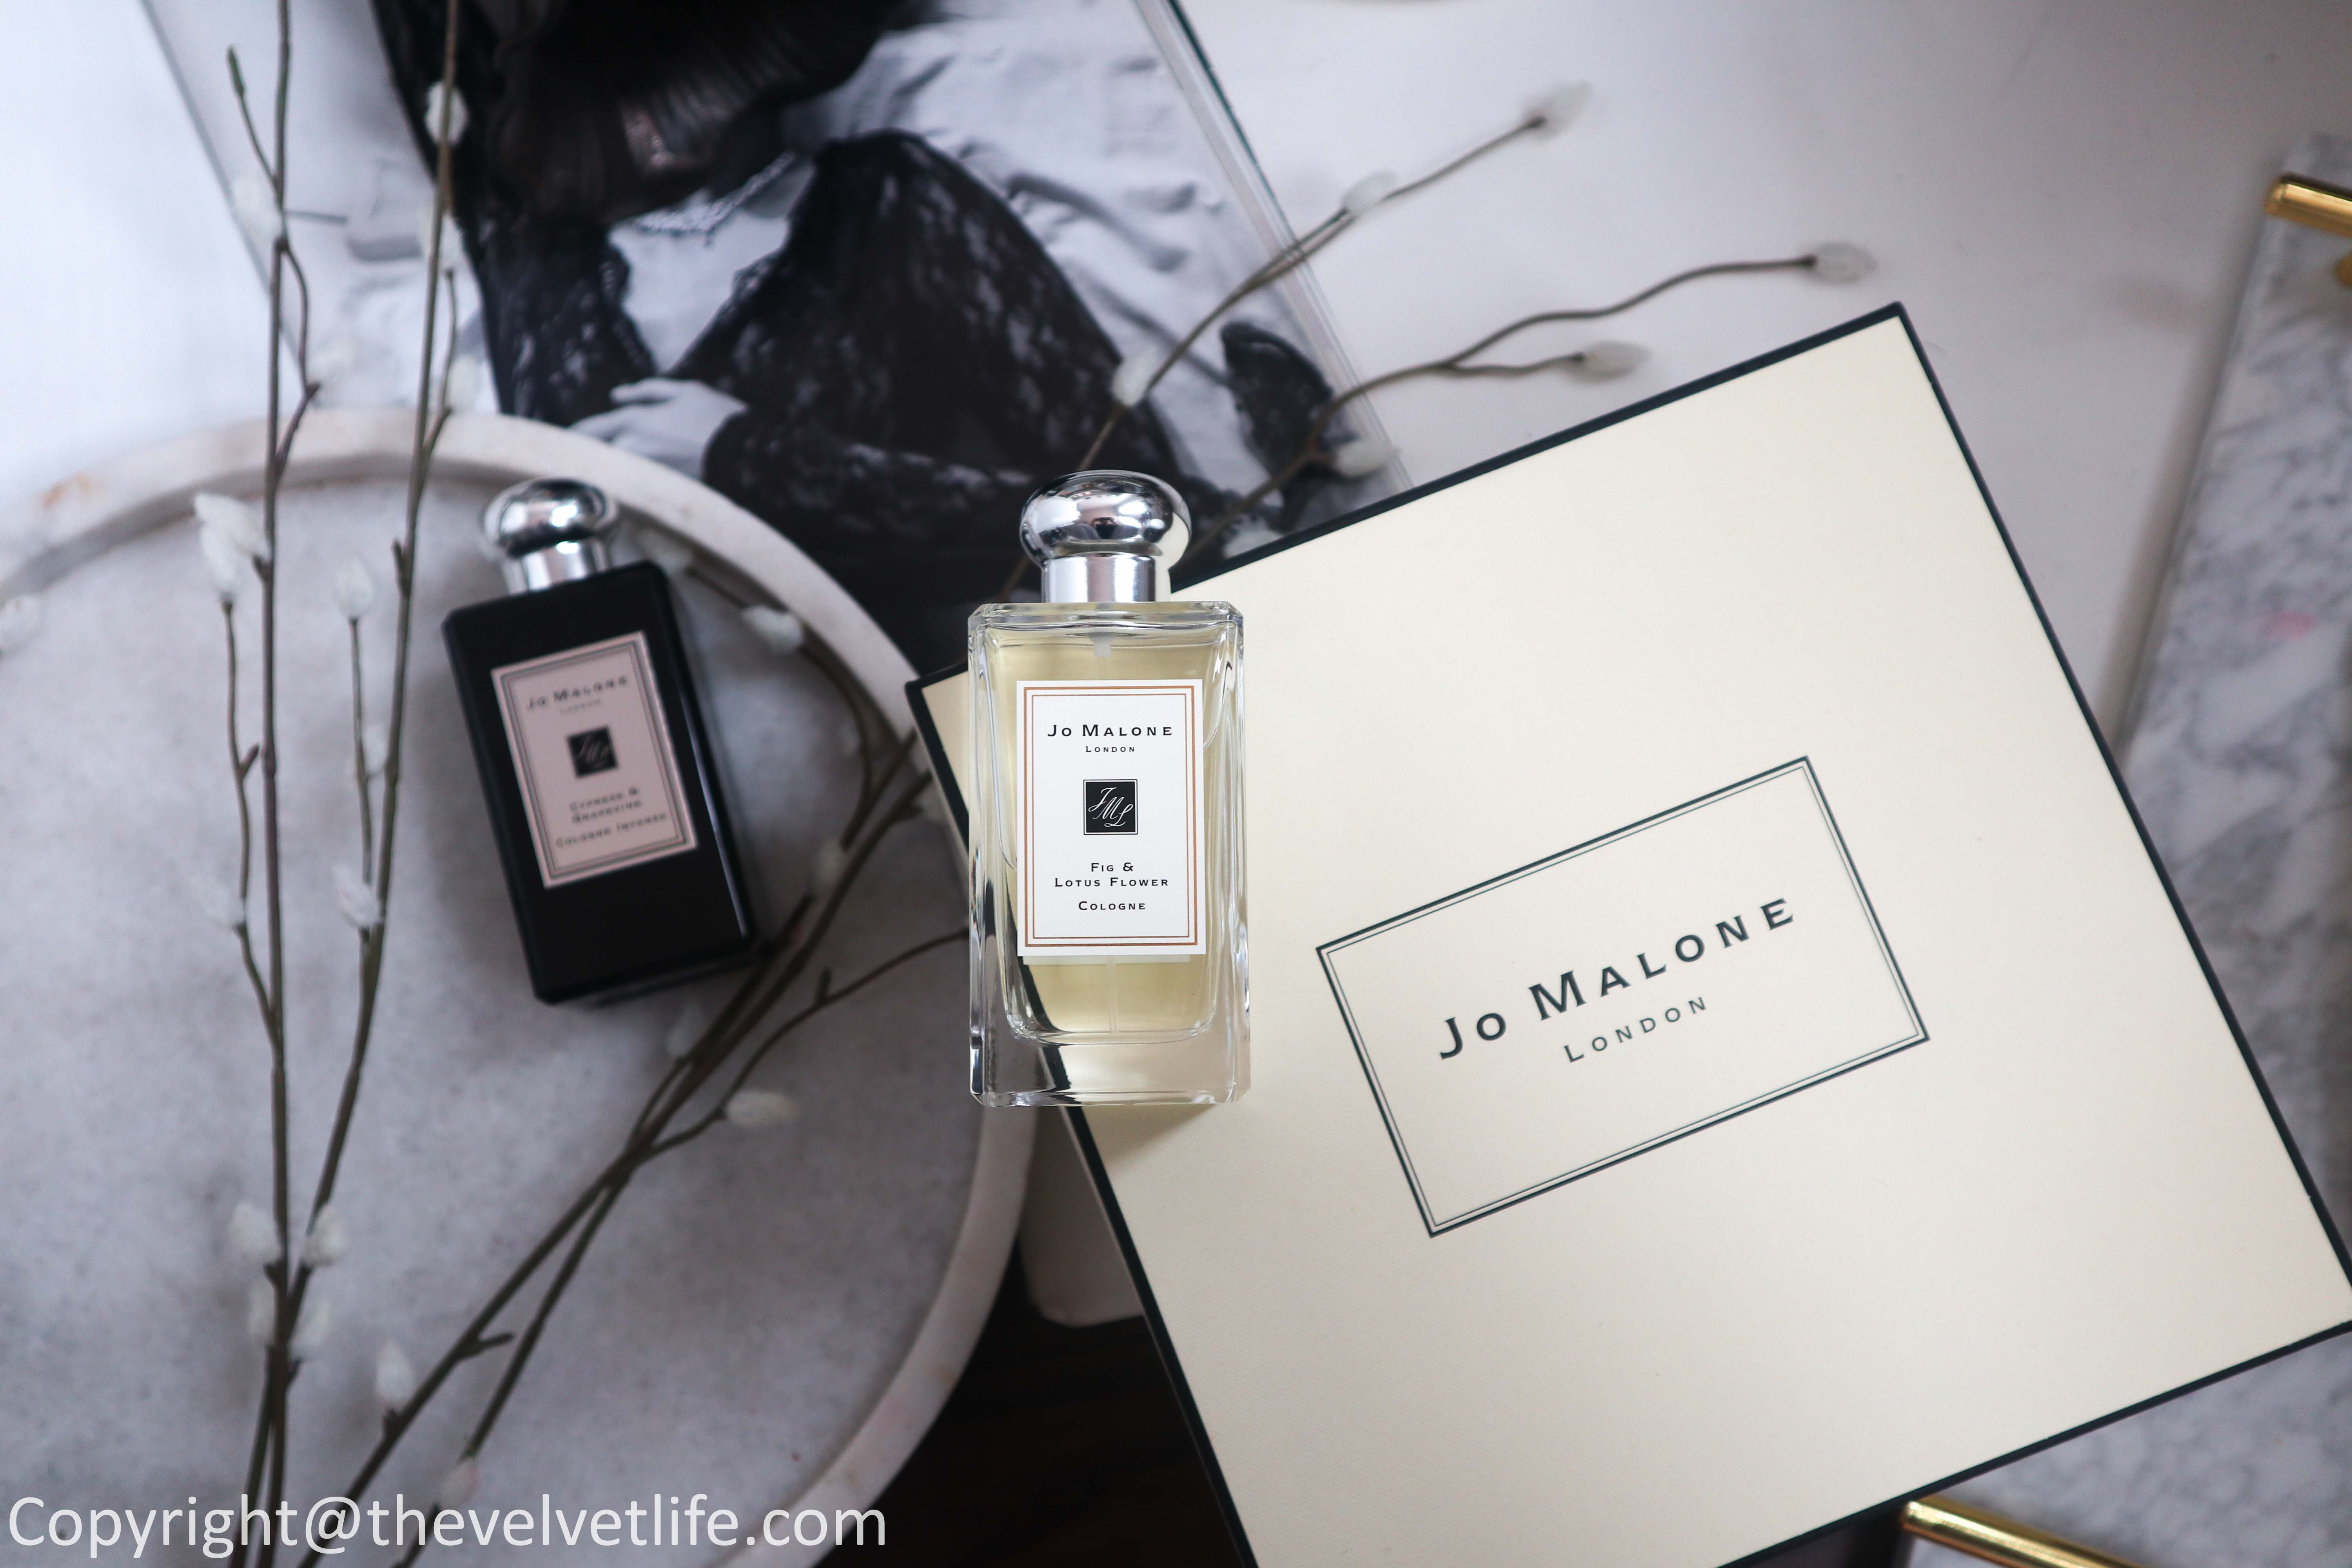 New Jo Malone Lost in Wonder cologne collection with new fragrances Fig & Lotus Flower and Cypress & Grapevine review